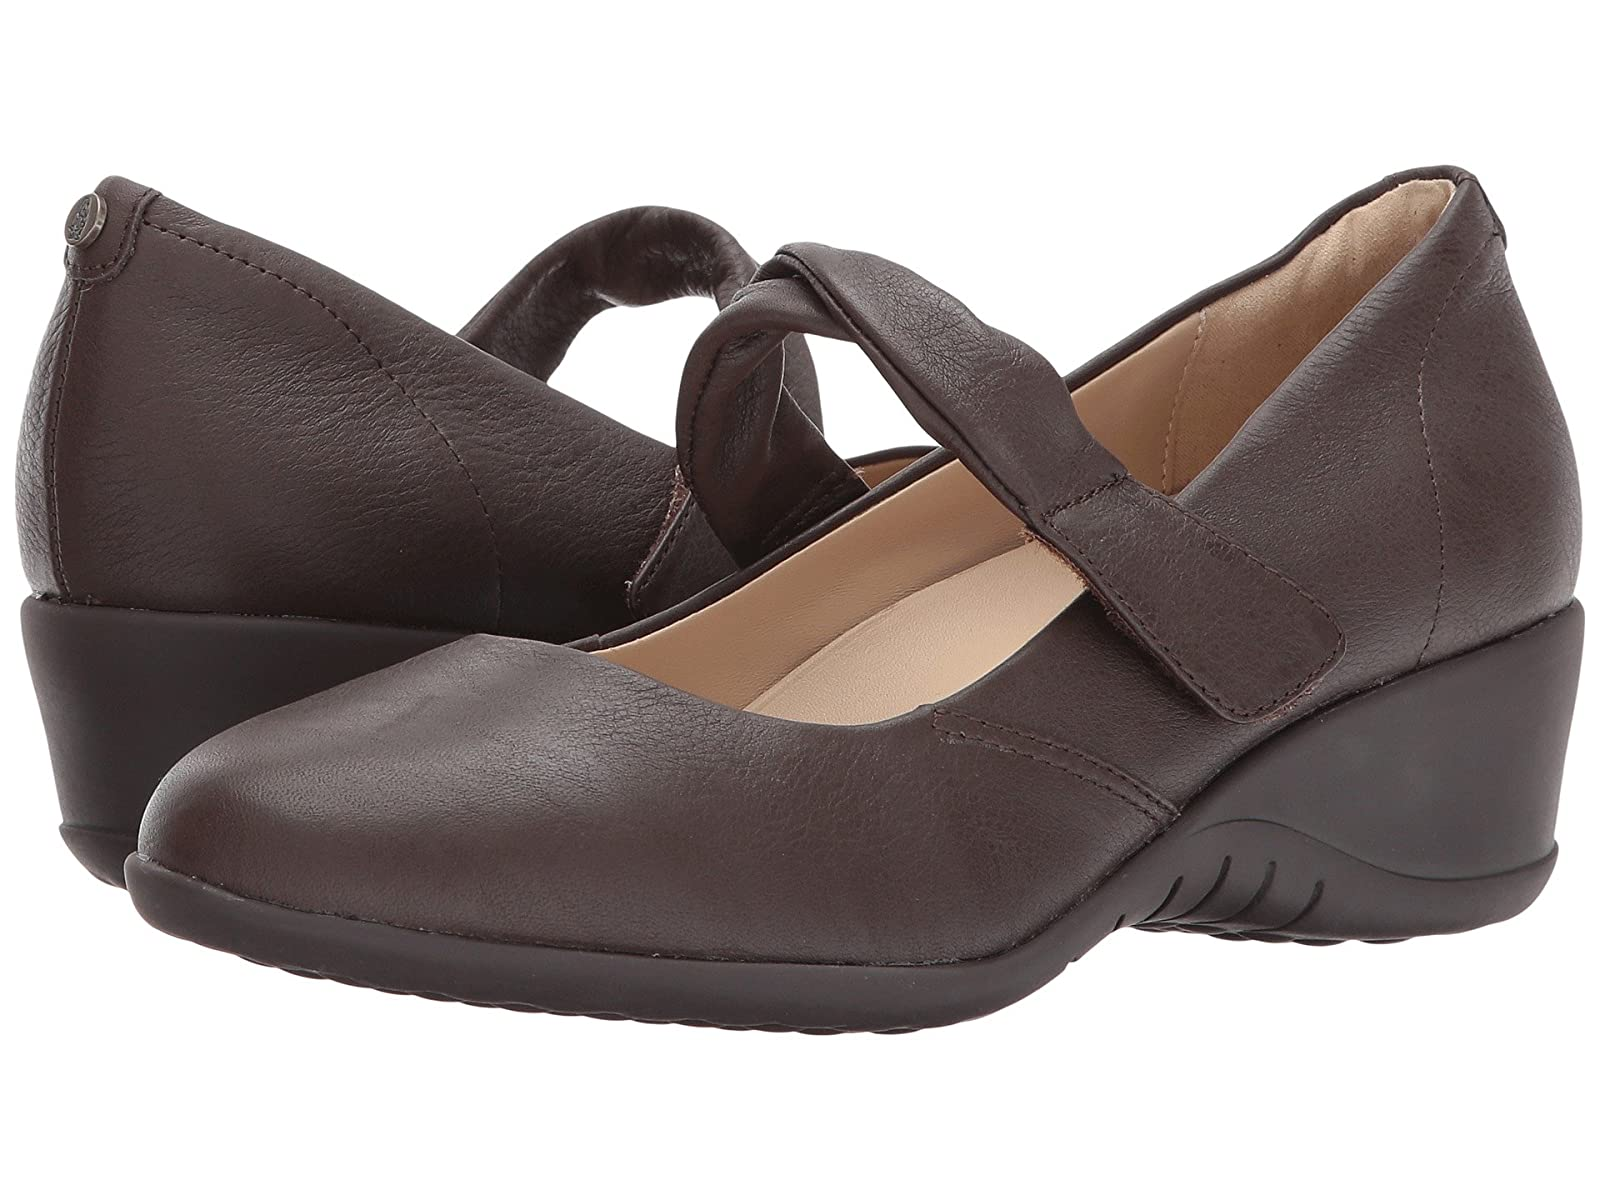 Hush Puppies Jaxine OdellAtmospheric grades have affordable shoes